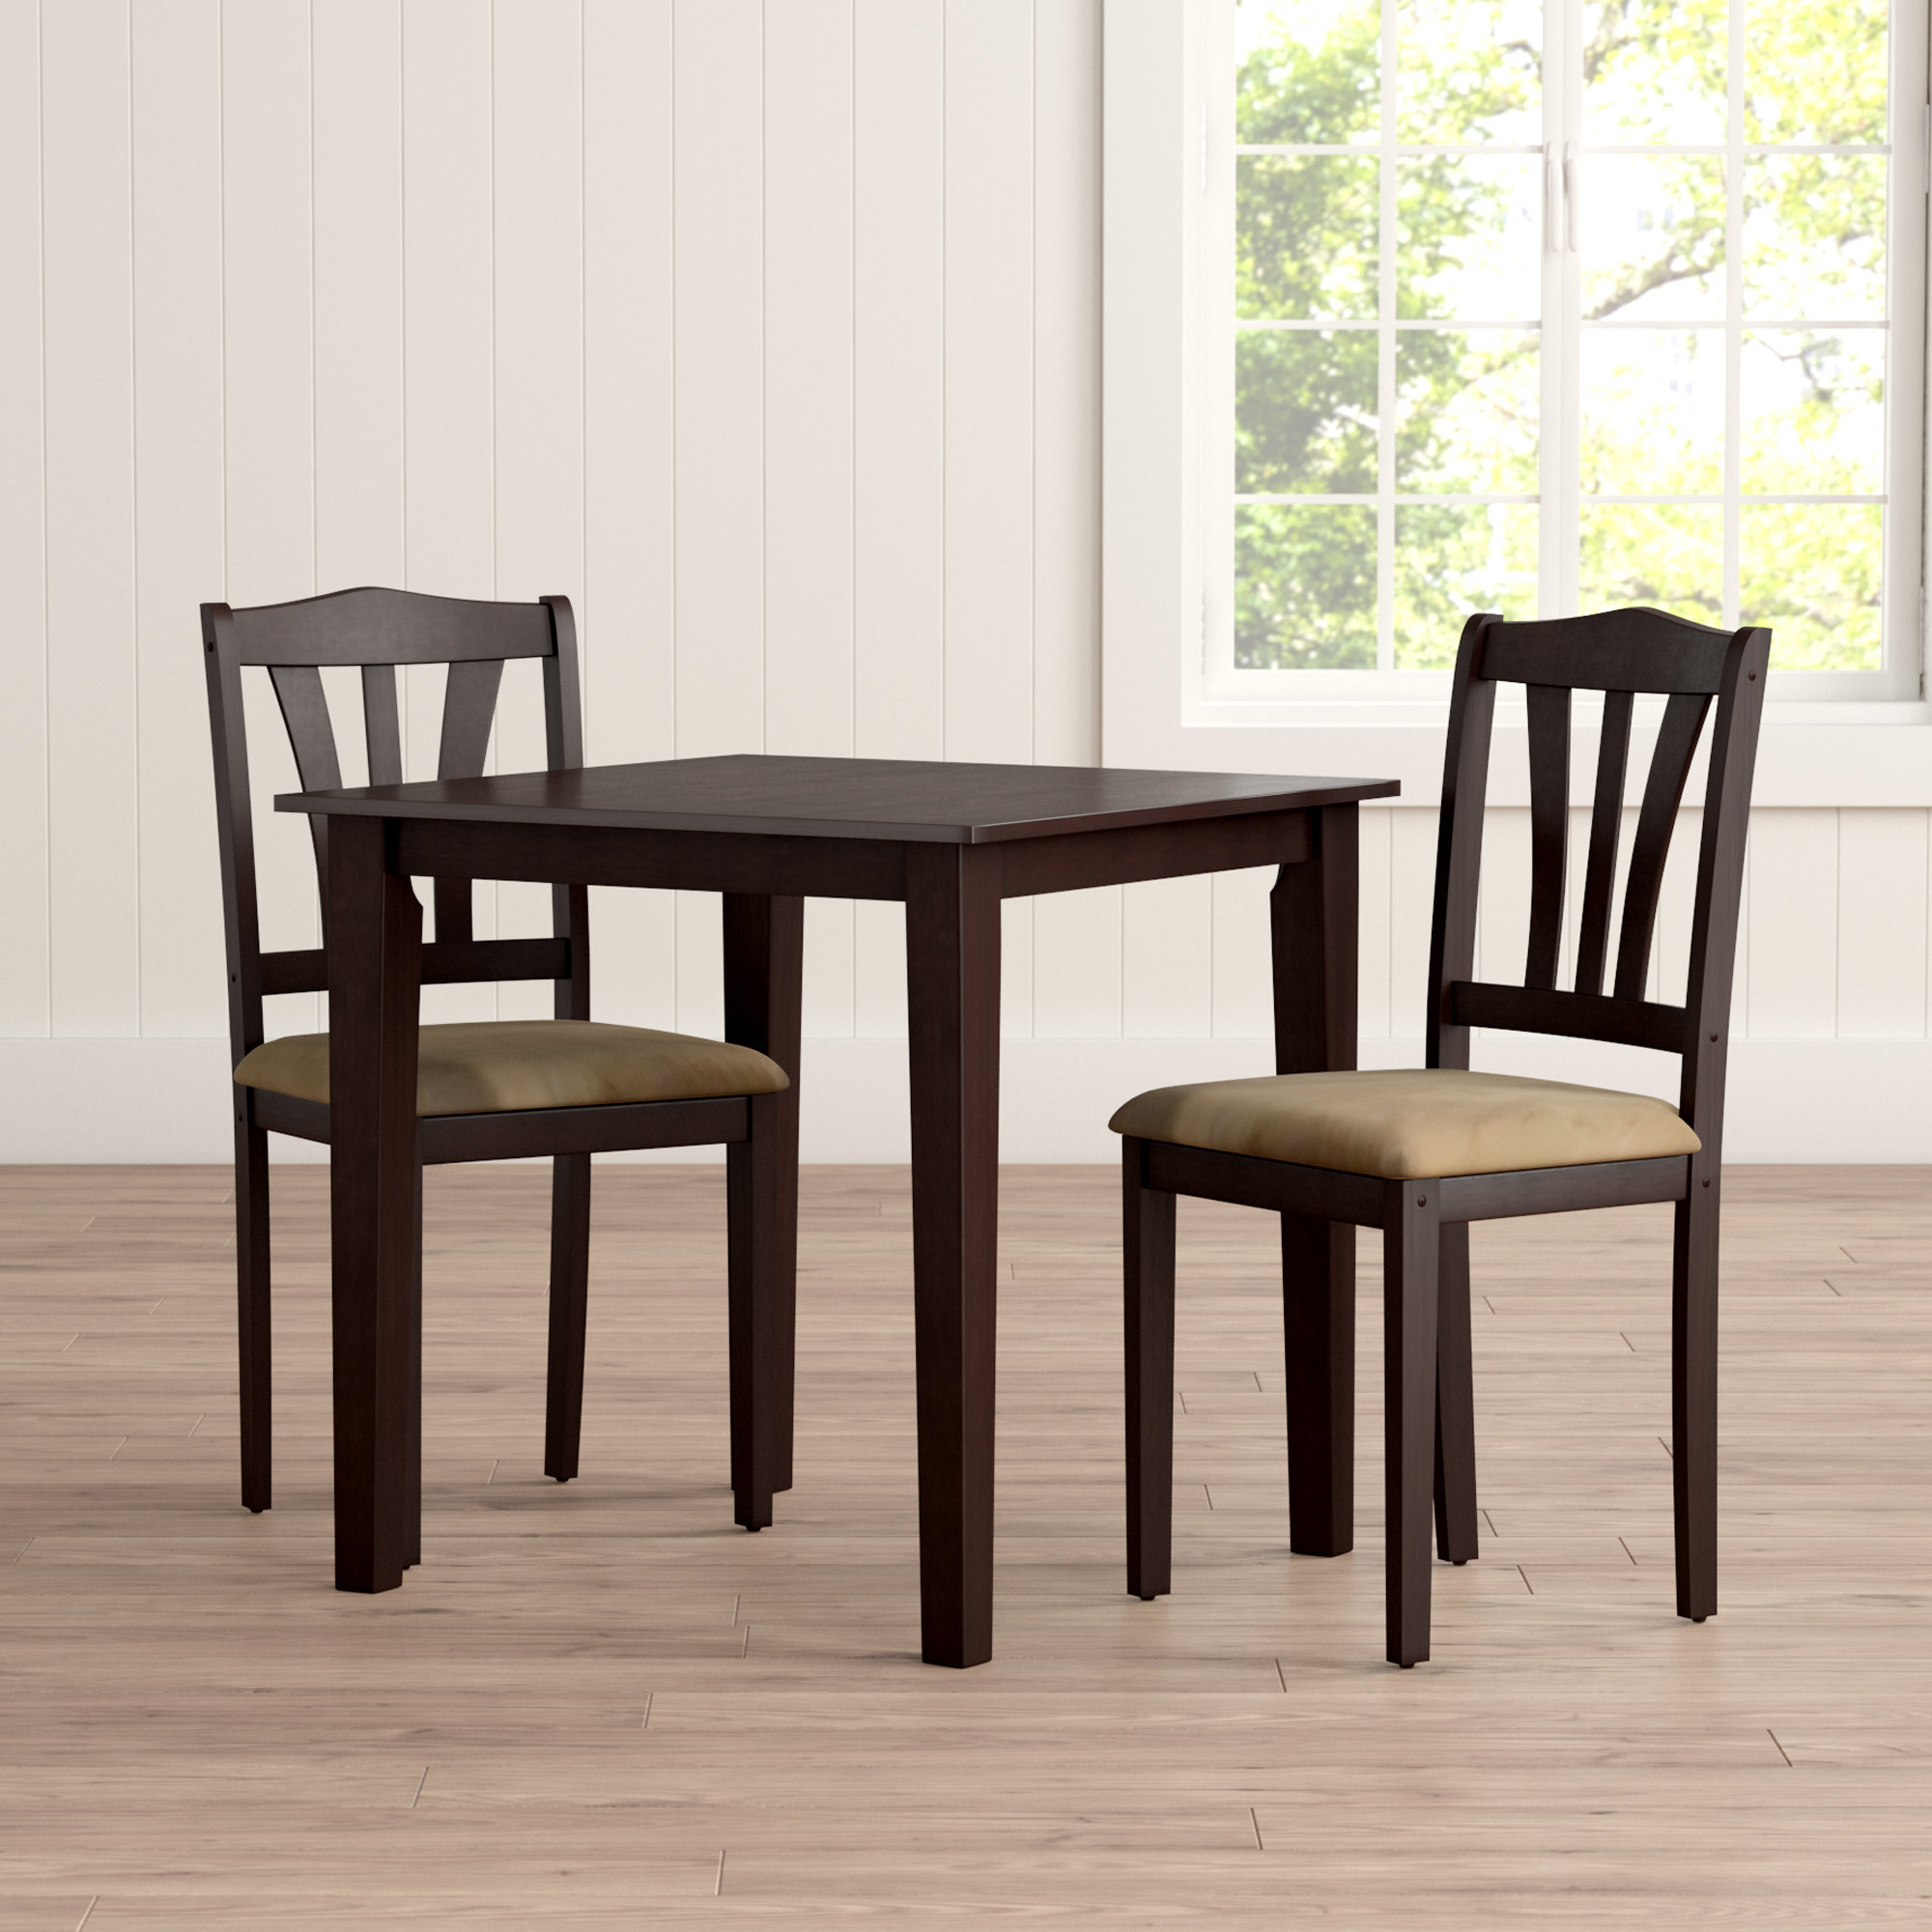 Dinah 3 Piece Dining Set Within Current Kinsler 3 Piece Bistro Sets (View 5 of 20)